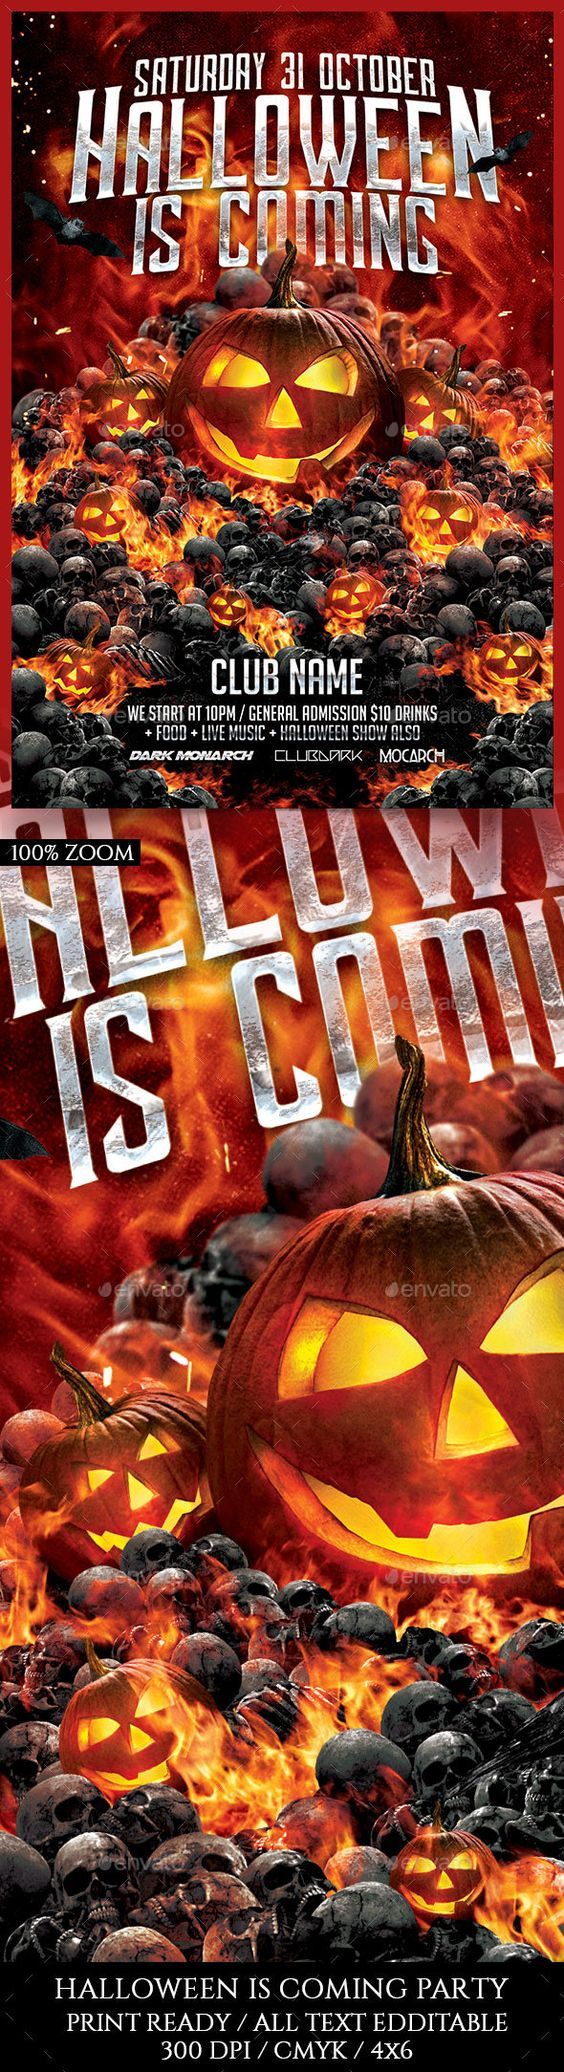 Halloween Is Coming Flyer Template PSD. Download here: https://graphicriver.net/item/halloween-is-coming/17619390?ref=ksioks